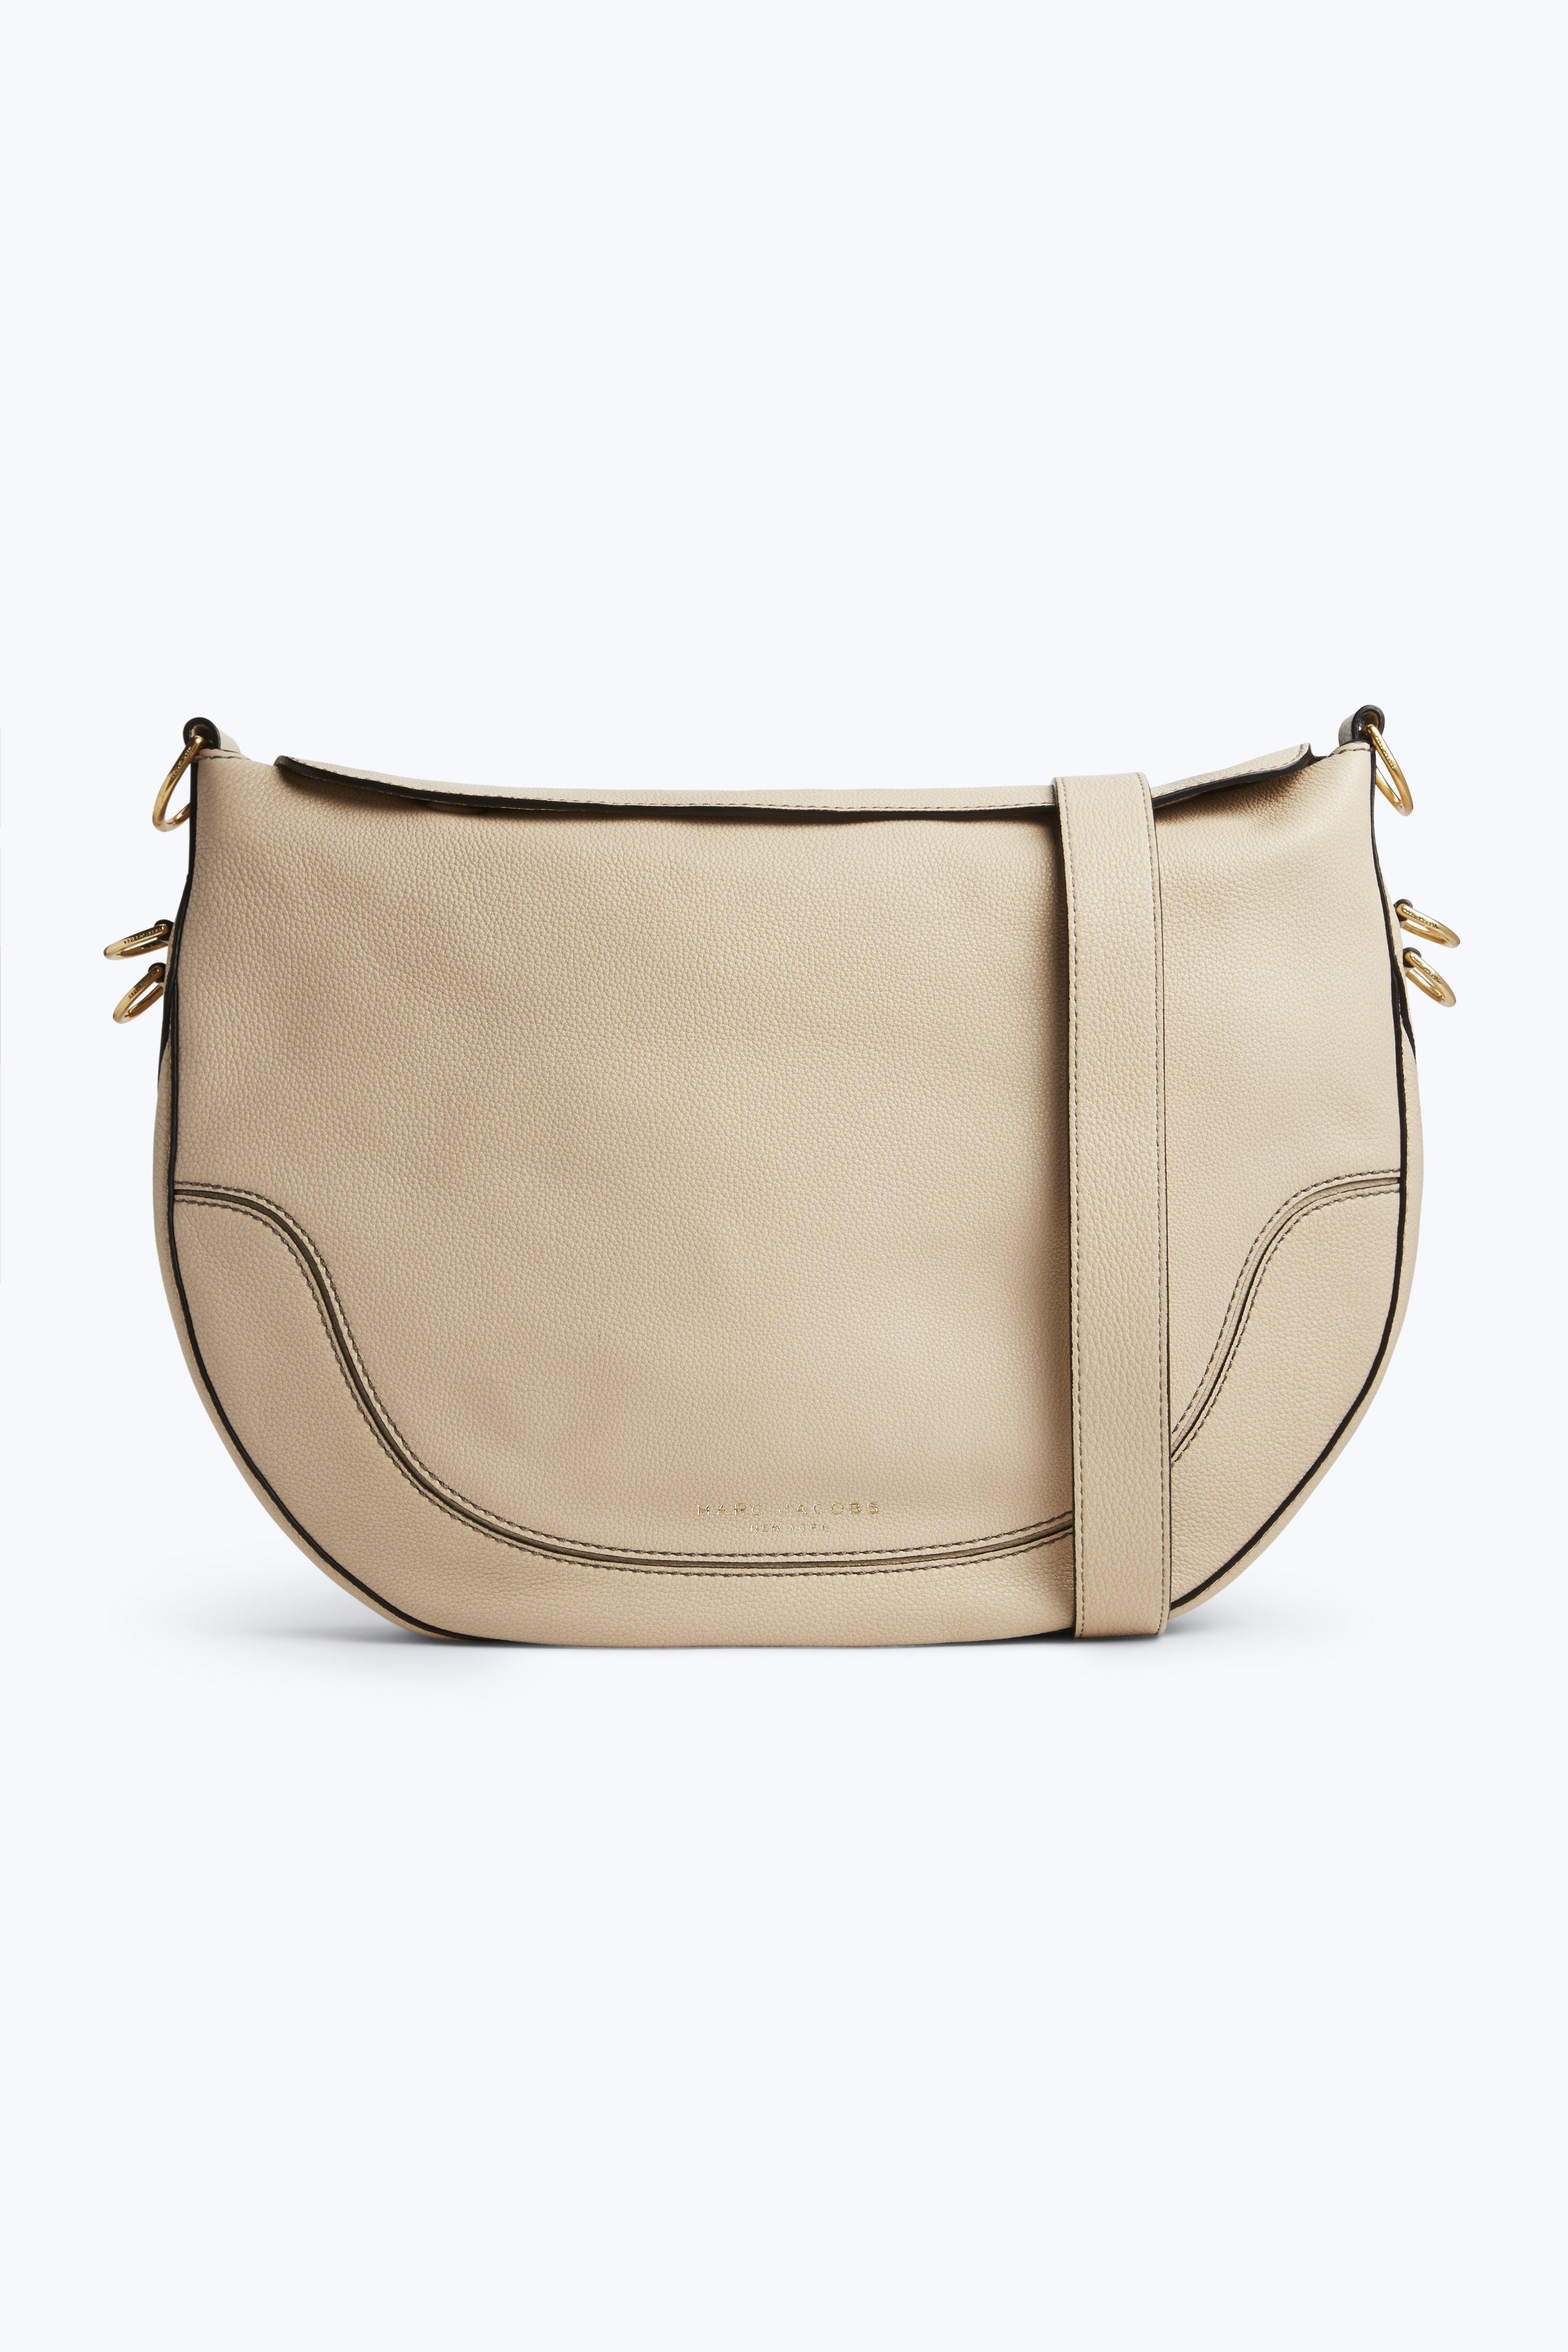 Marc Jacobs Leather Shoulder Bag - Beige In Buff